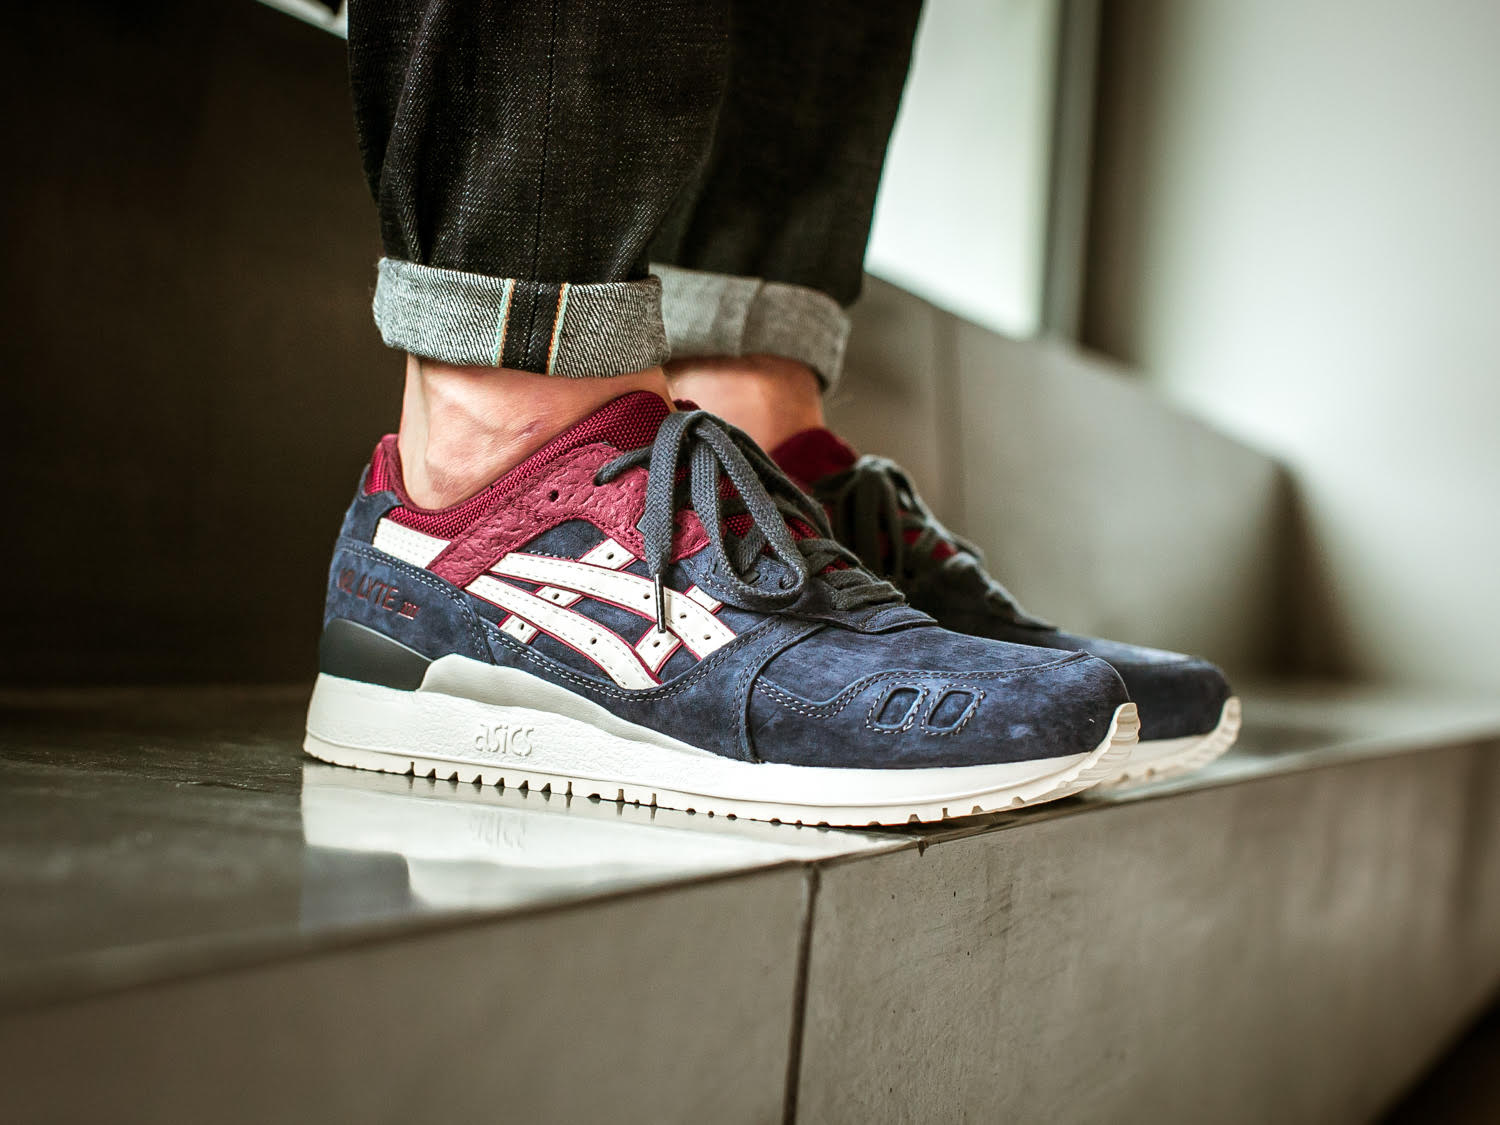 Asics Gel-Lyte III India Ink Right